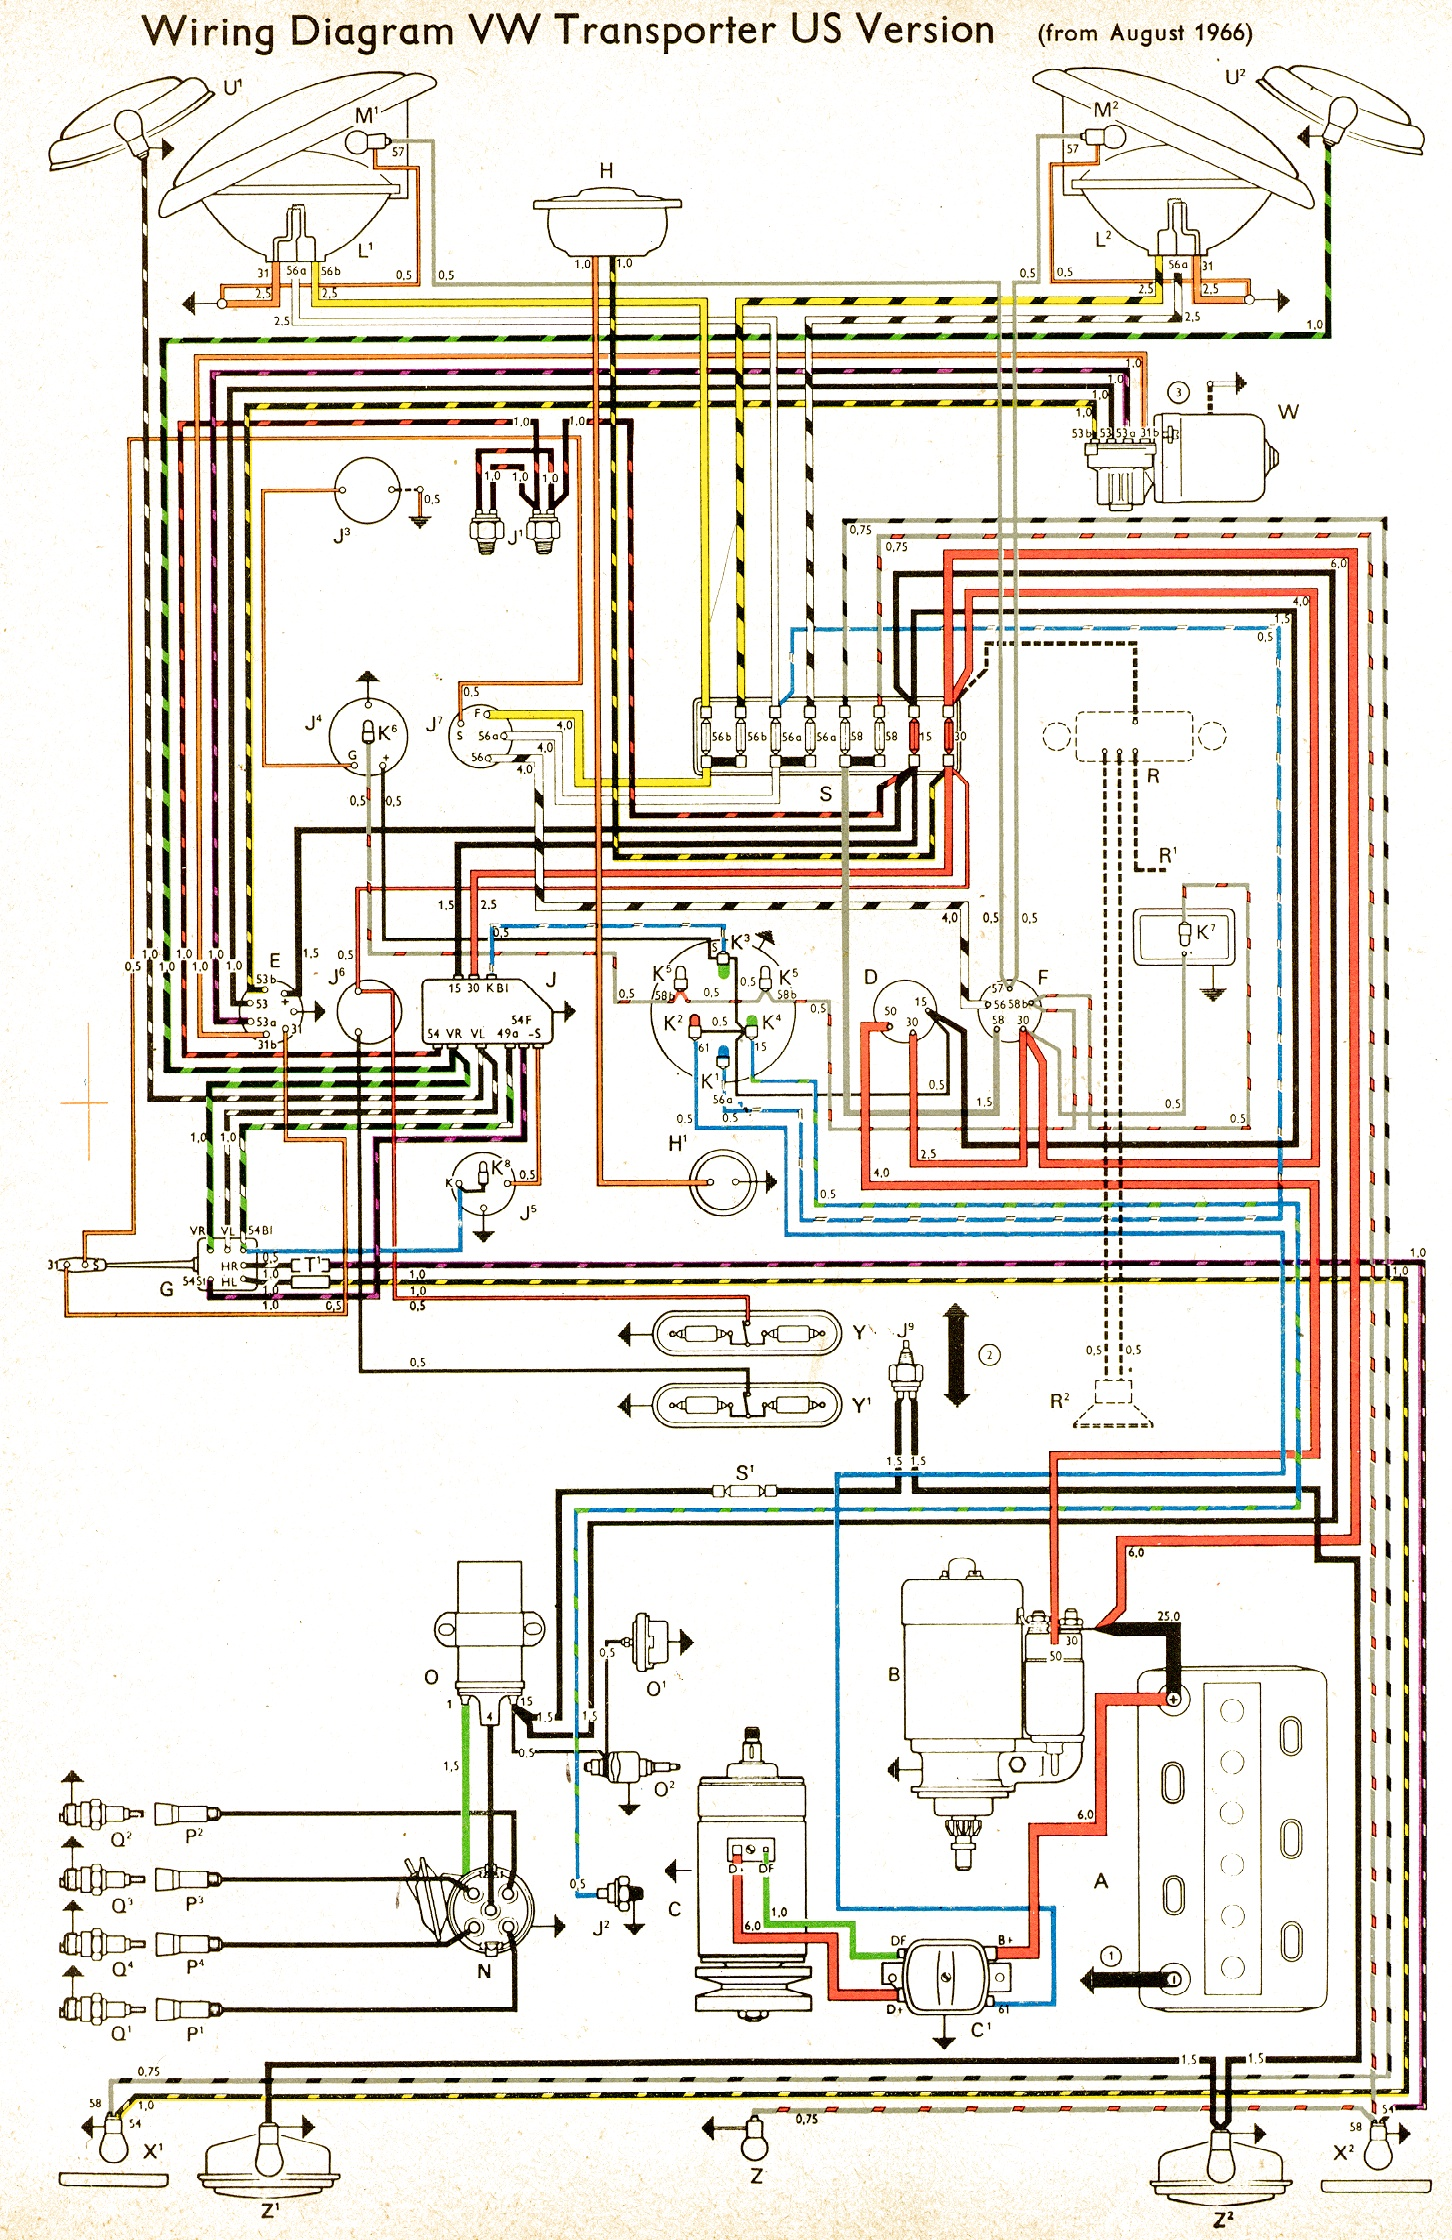 VintageBusCom VW Bus and other Wiring Diagrams – Key West Panel Wiring Diagram